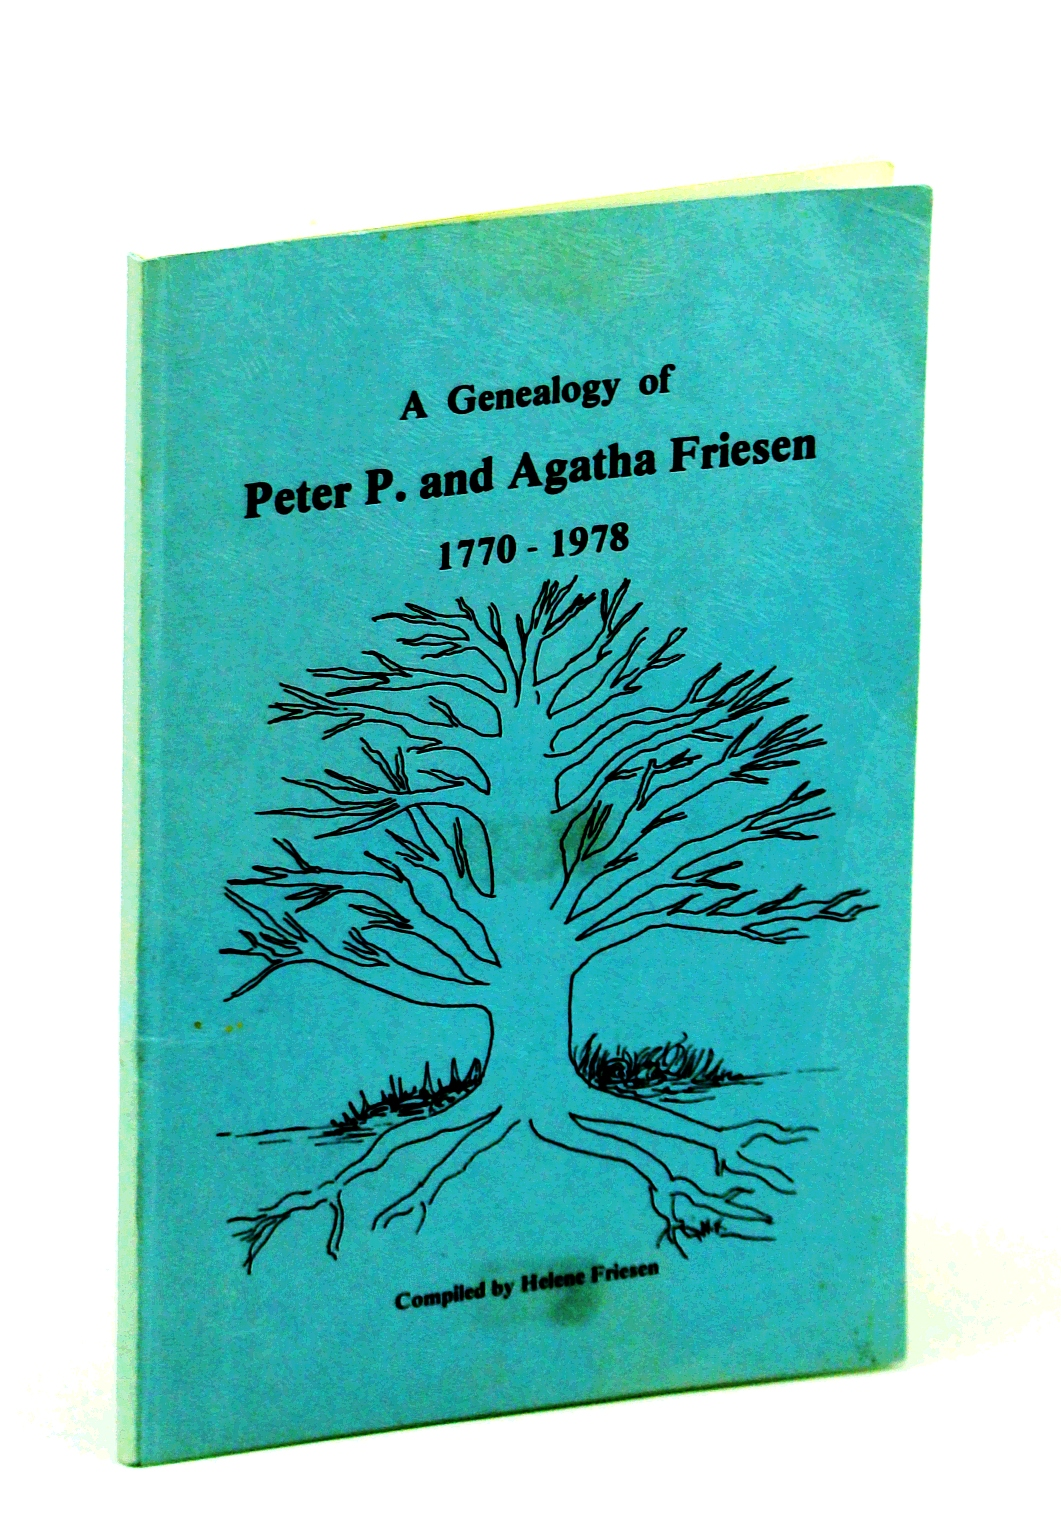 Image for A Genealogy of Peter P. And Agatha Friesen 1770-1978